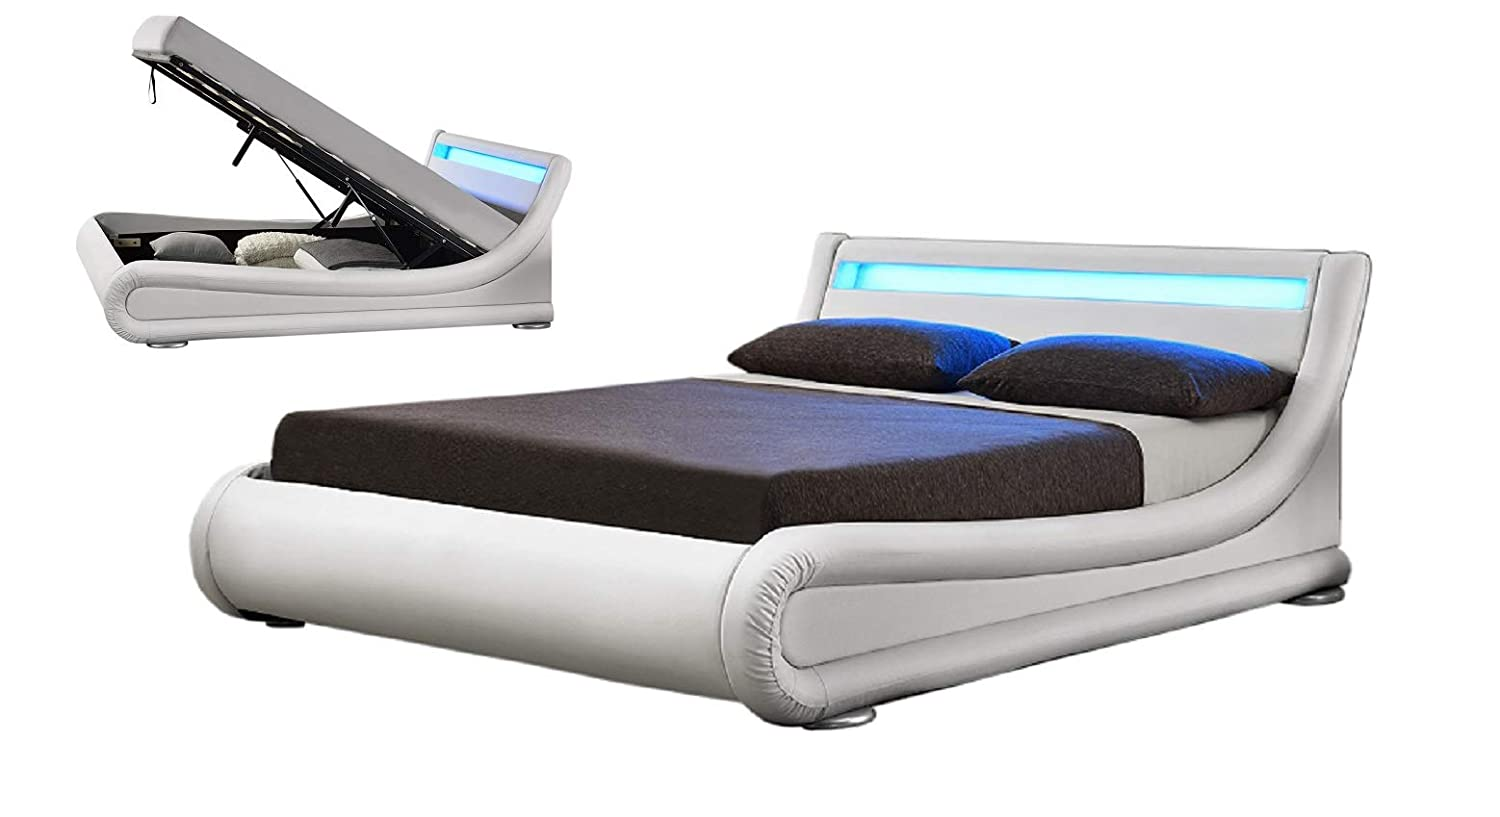 Phenomenal Limitless Home New Rio Ottoman Led Designer Curved Storage Bed Frame 4Ft6 Double 5 Ft King Size In White 5Ft King Pabps2019 Chair Design Images Pabps2019Com